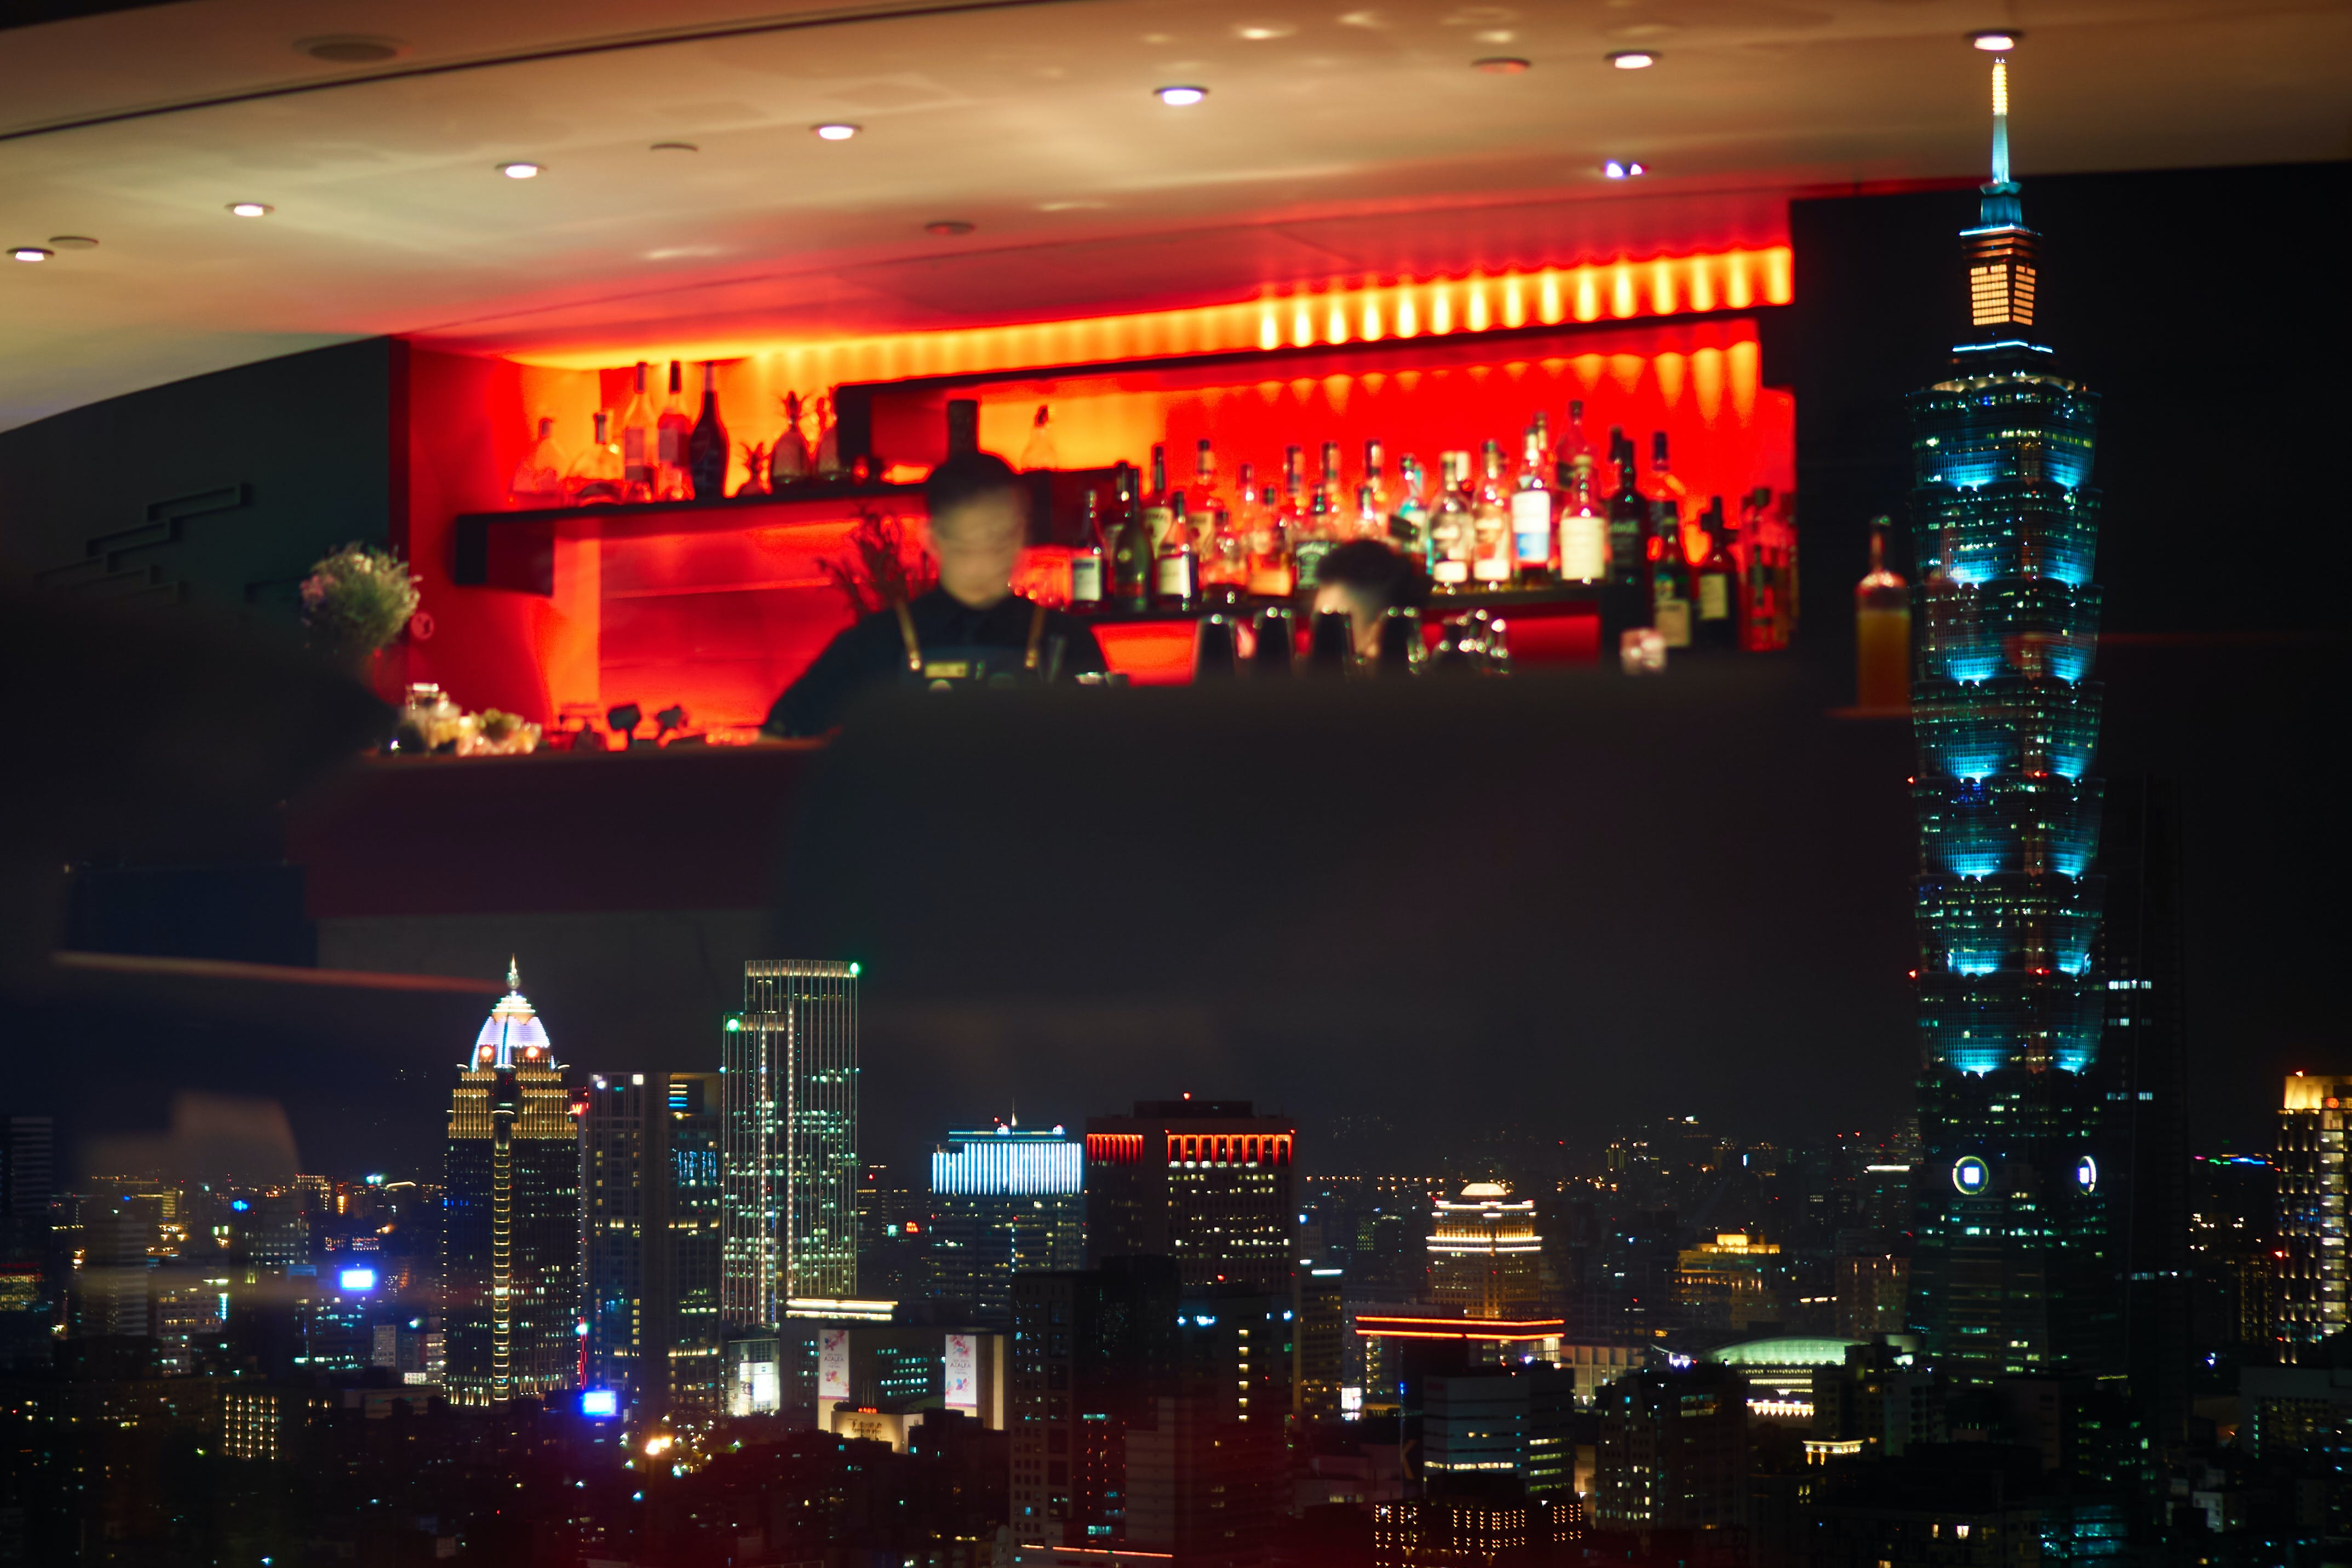 Free stock photo of bar, city view, reflection, Taipei 101